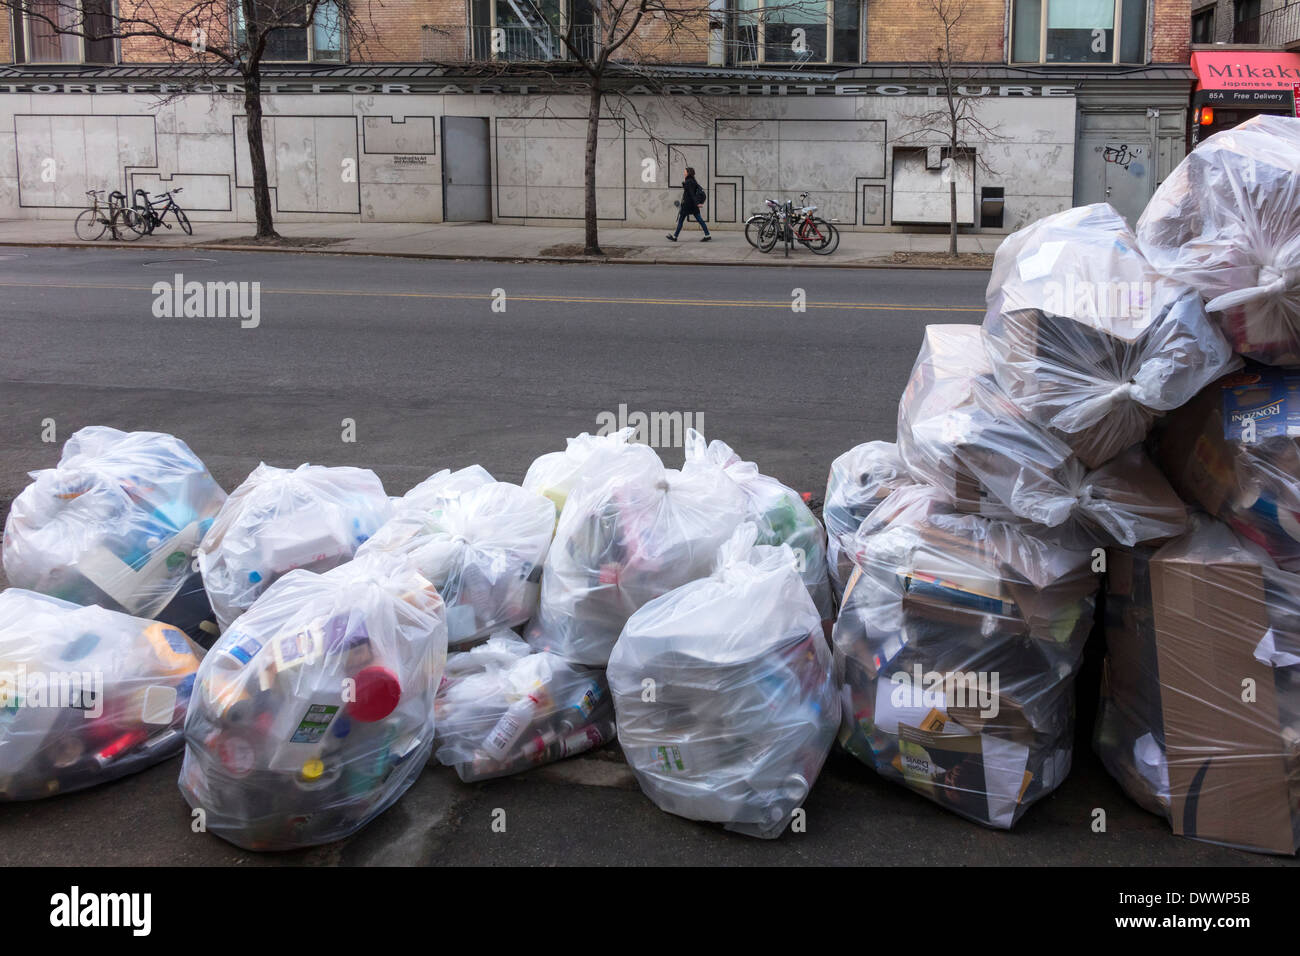 recyclable trash in clear plastic bags in New York City - Stock Image